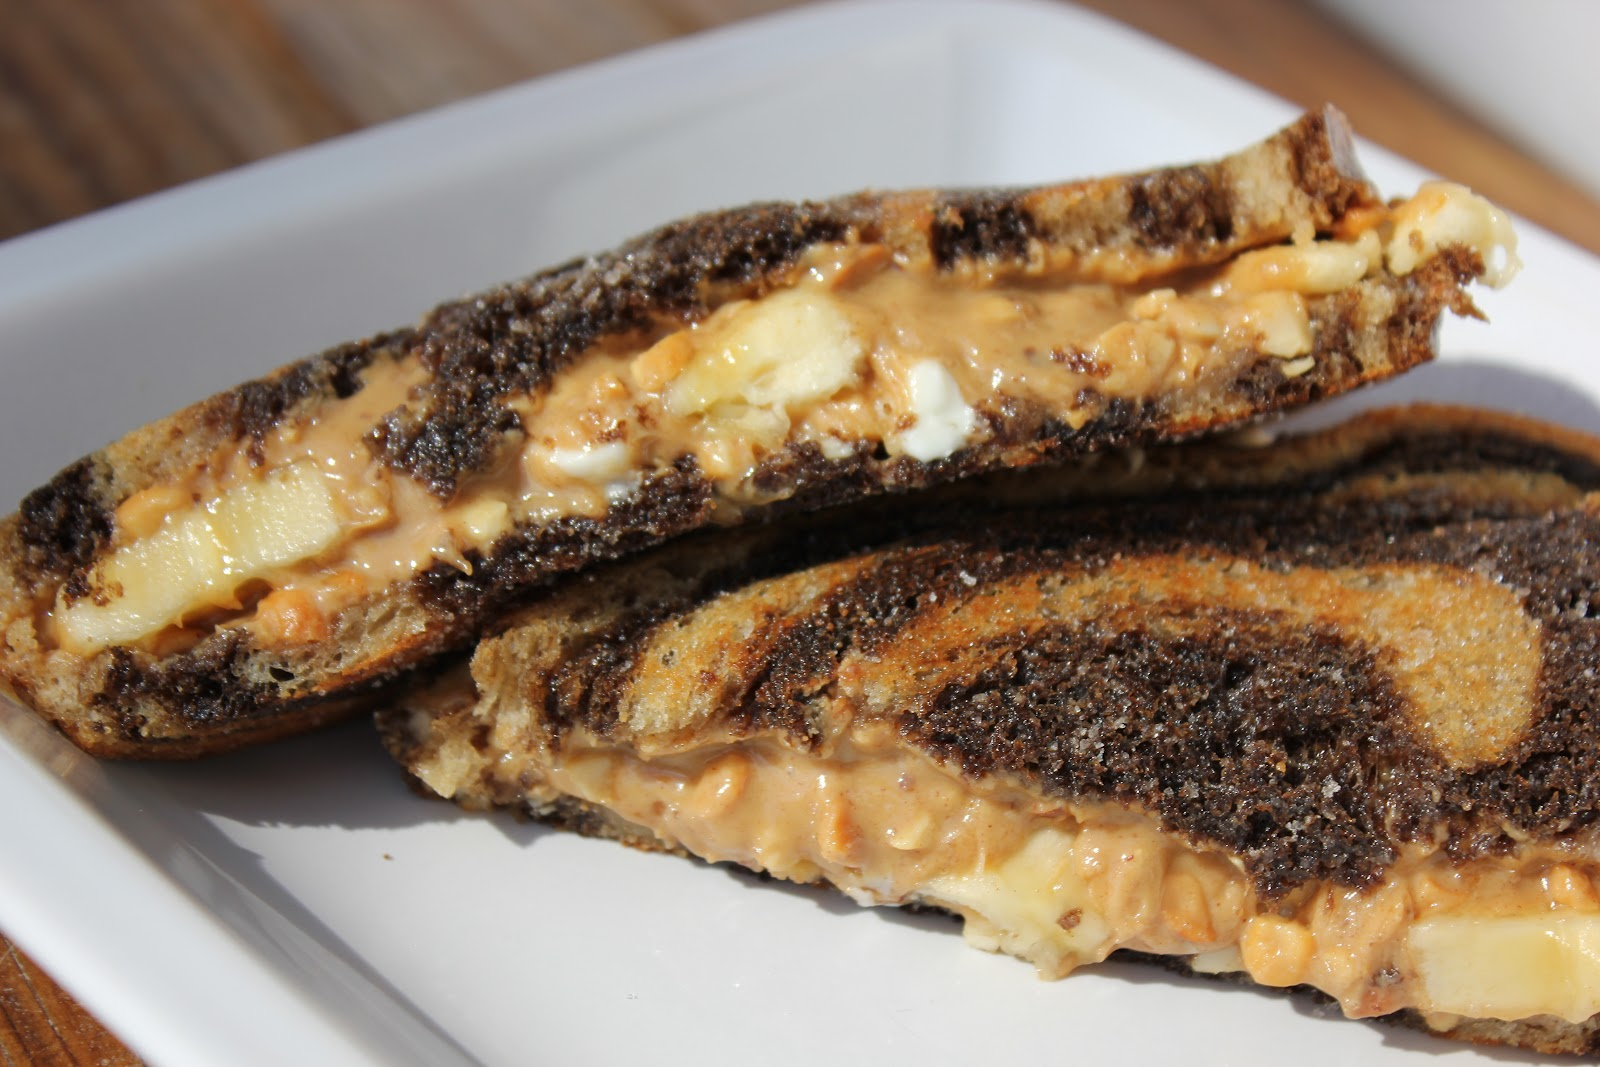 Let's Do Lunch: Grilled Peanut Butter and Banana Sandwich